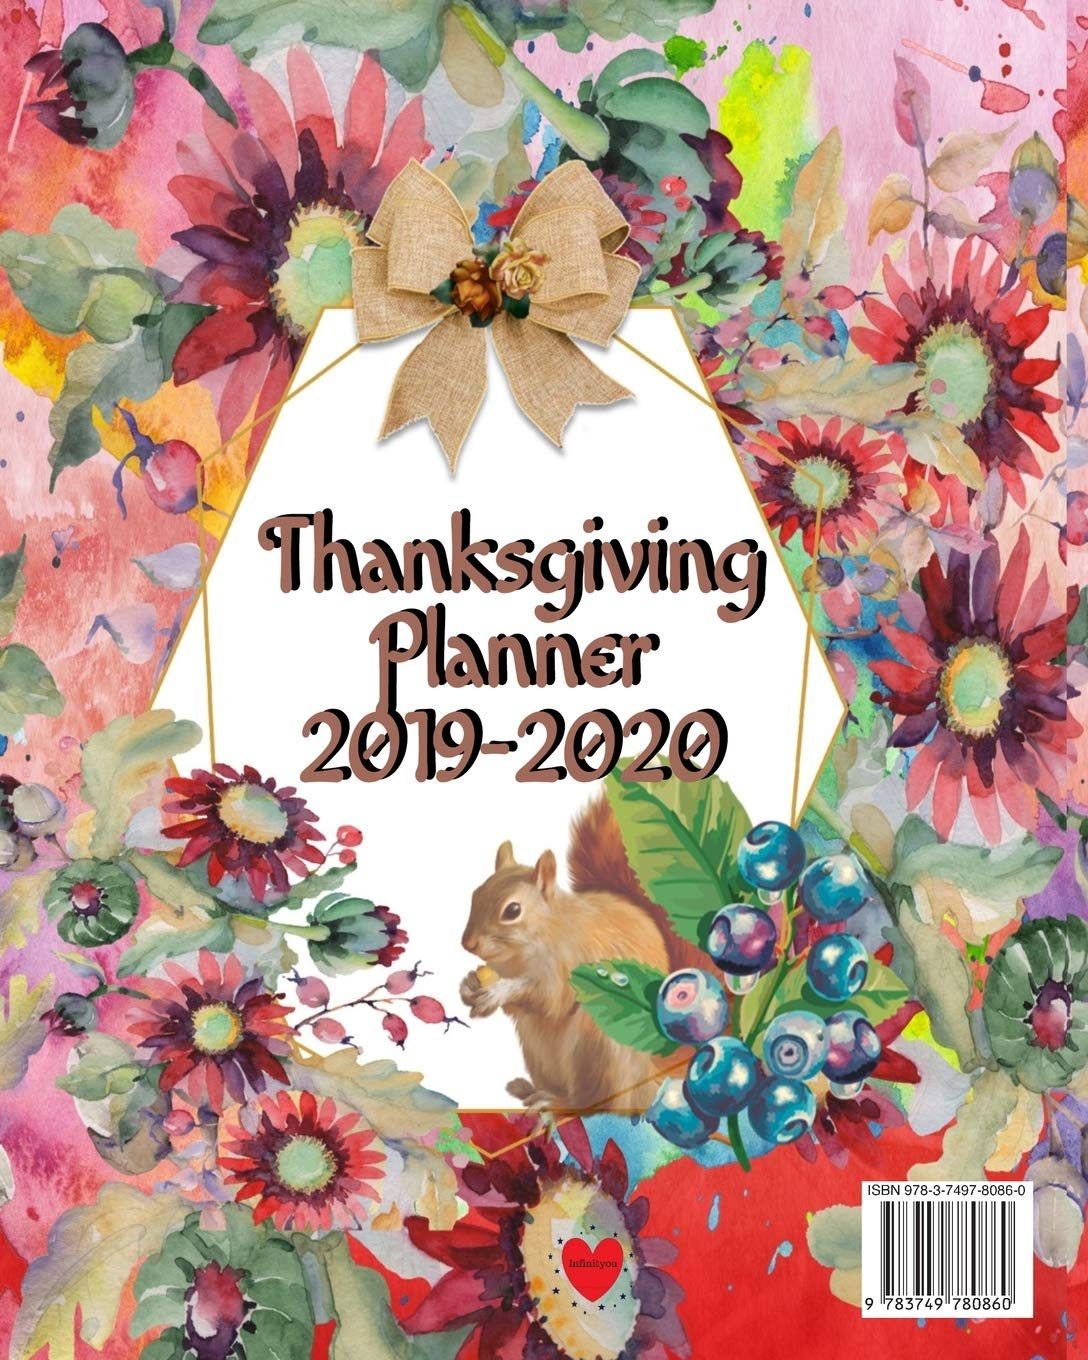 Buy Thanksgiving Planner 2019 2020 Journal Planning Pages To Write In Ideas For Holiday Menu Dinner Recipes Guest List Gift Wish List Gratitude Schedule Adult Kid Activities Tr Book Online